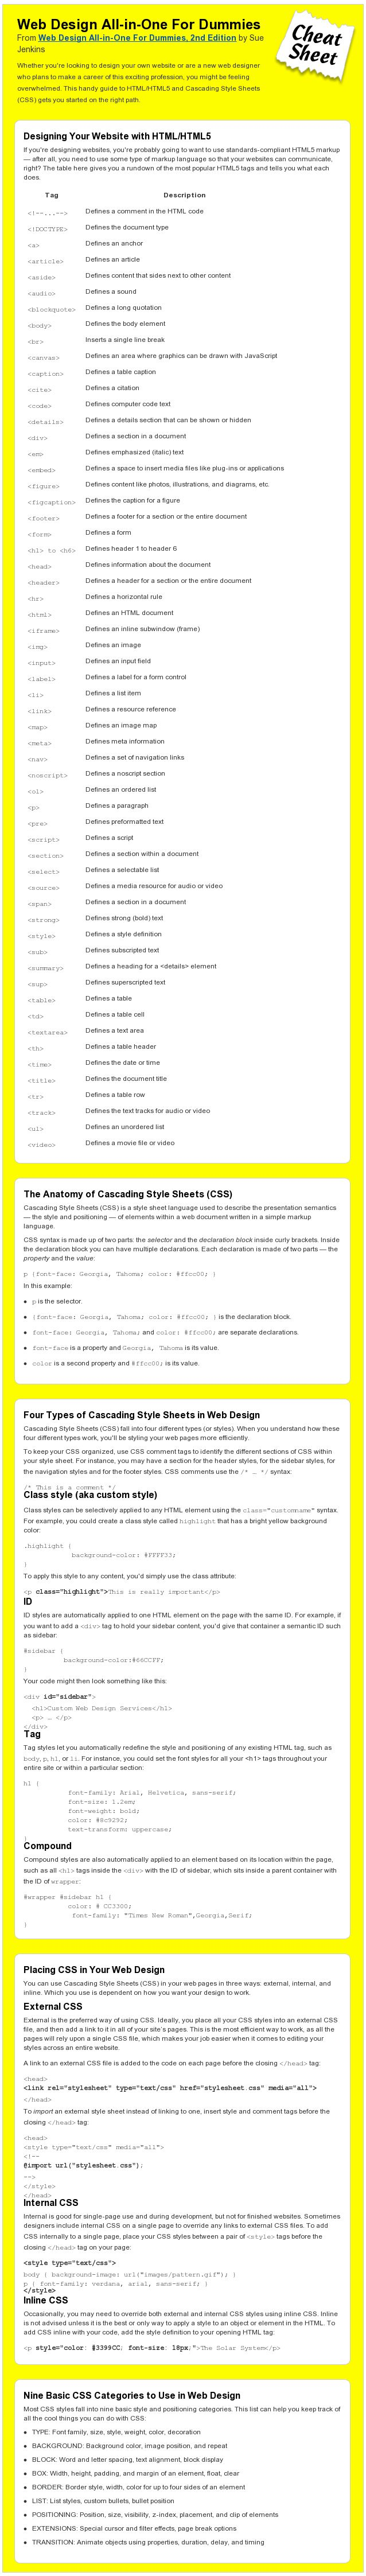 HTML5 and CSS Cheat Sheet